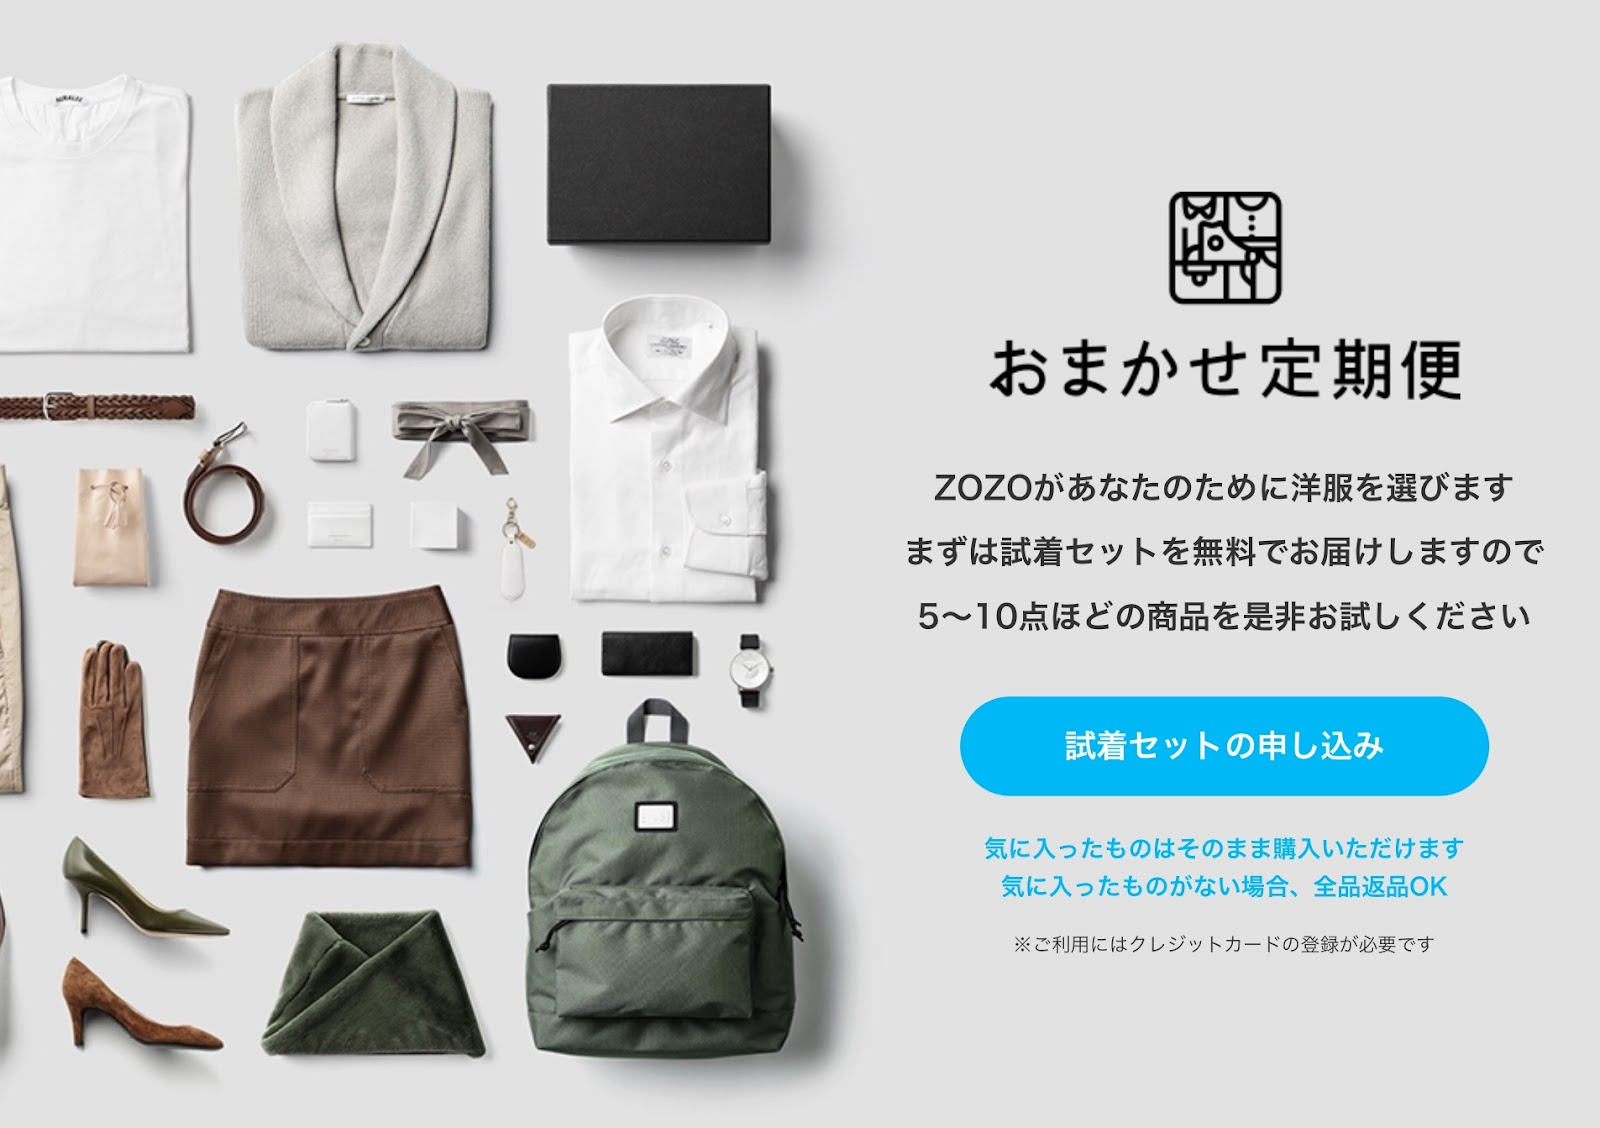 ZOZOTOWN -  Now defunct clothing subscription service